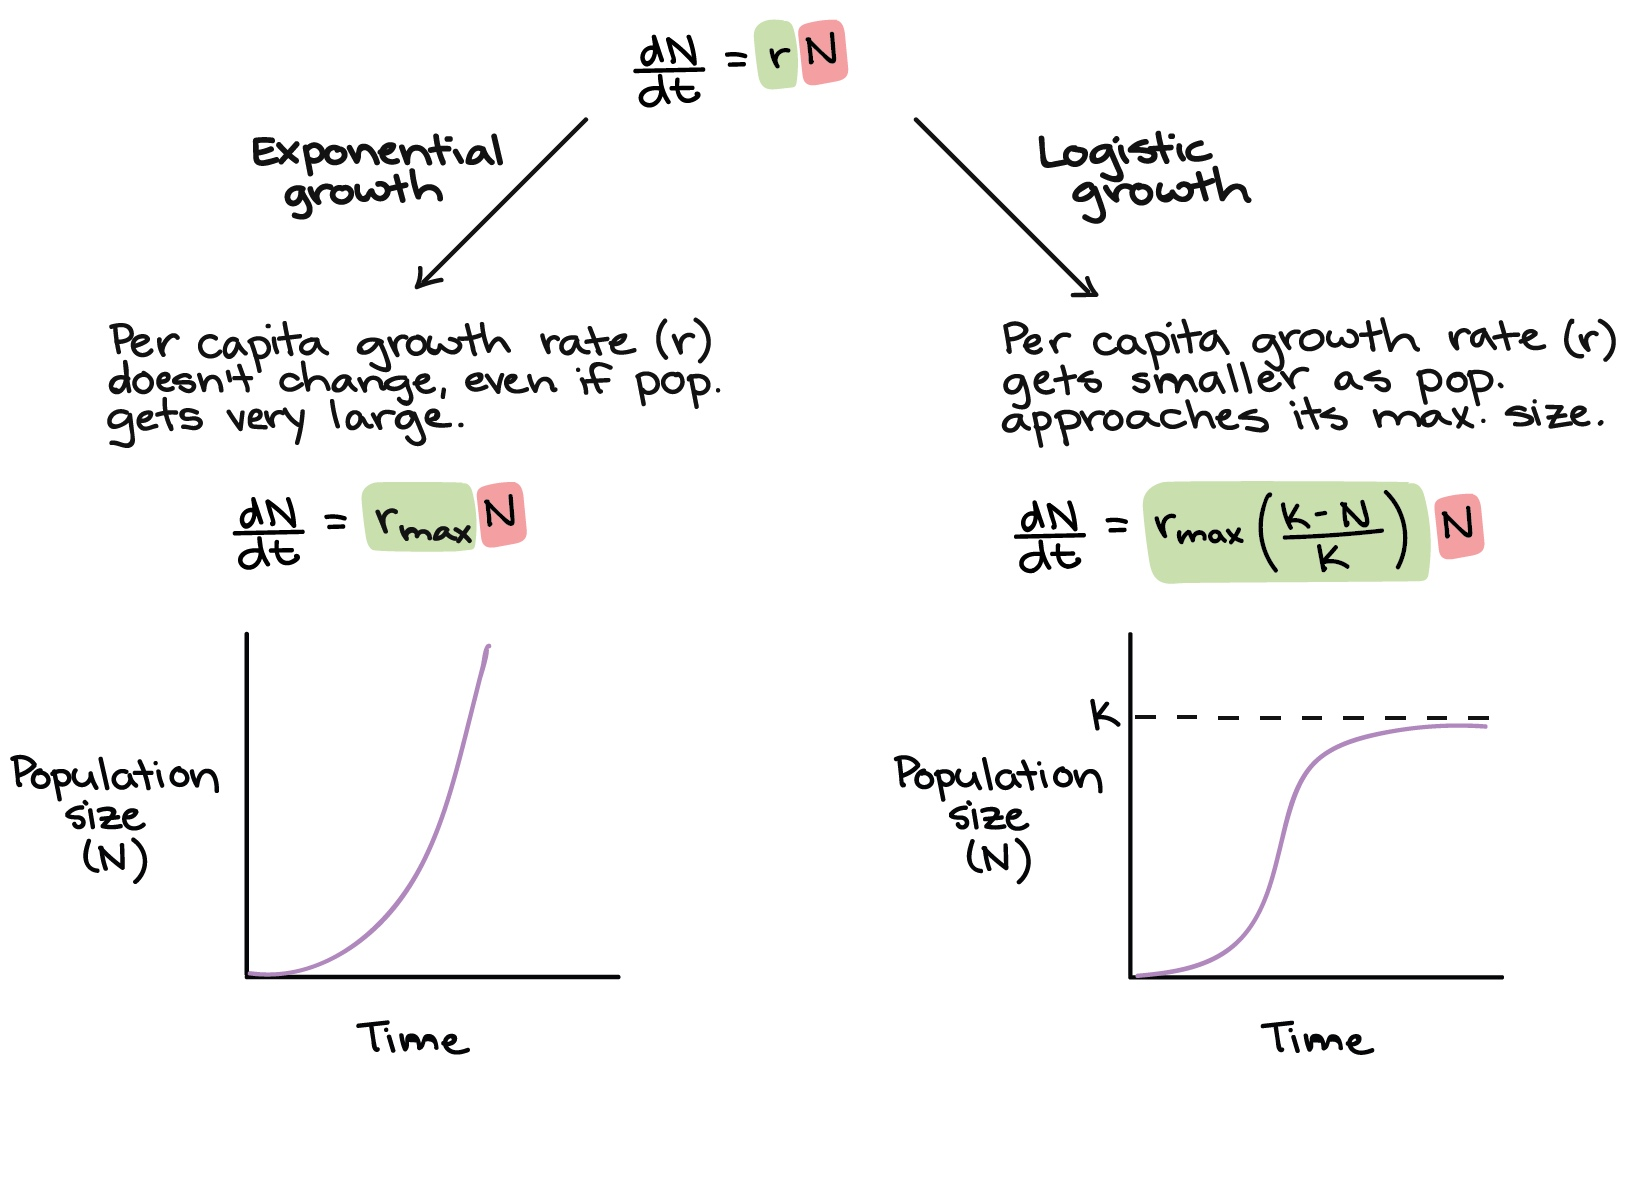 Image credit:  Khan Academy  - Examples of common population growth curves.